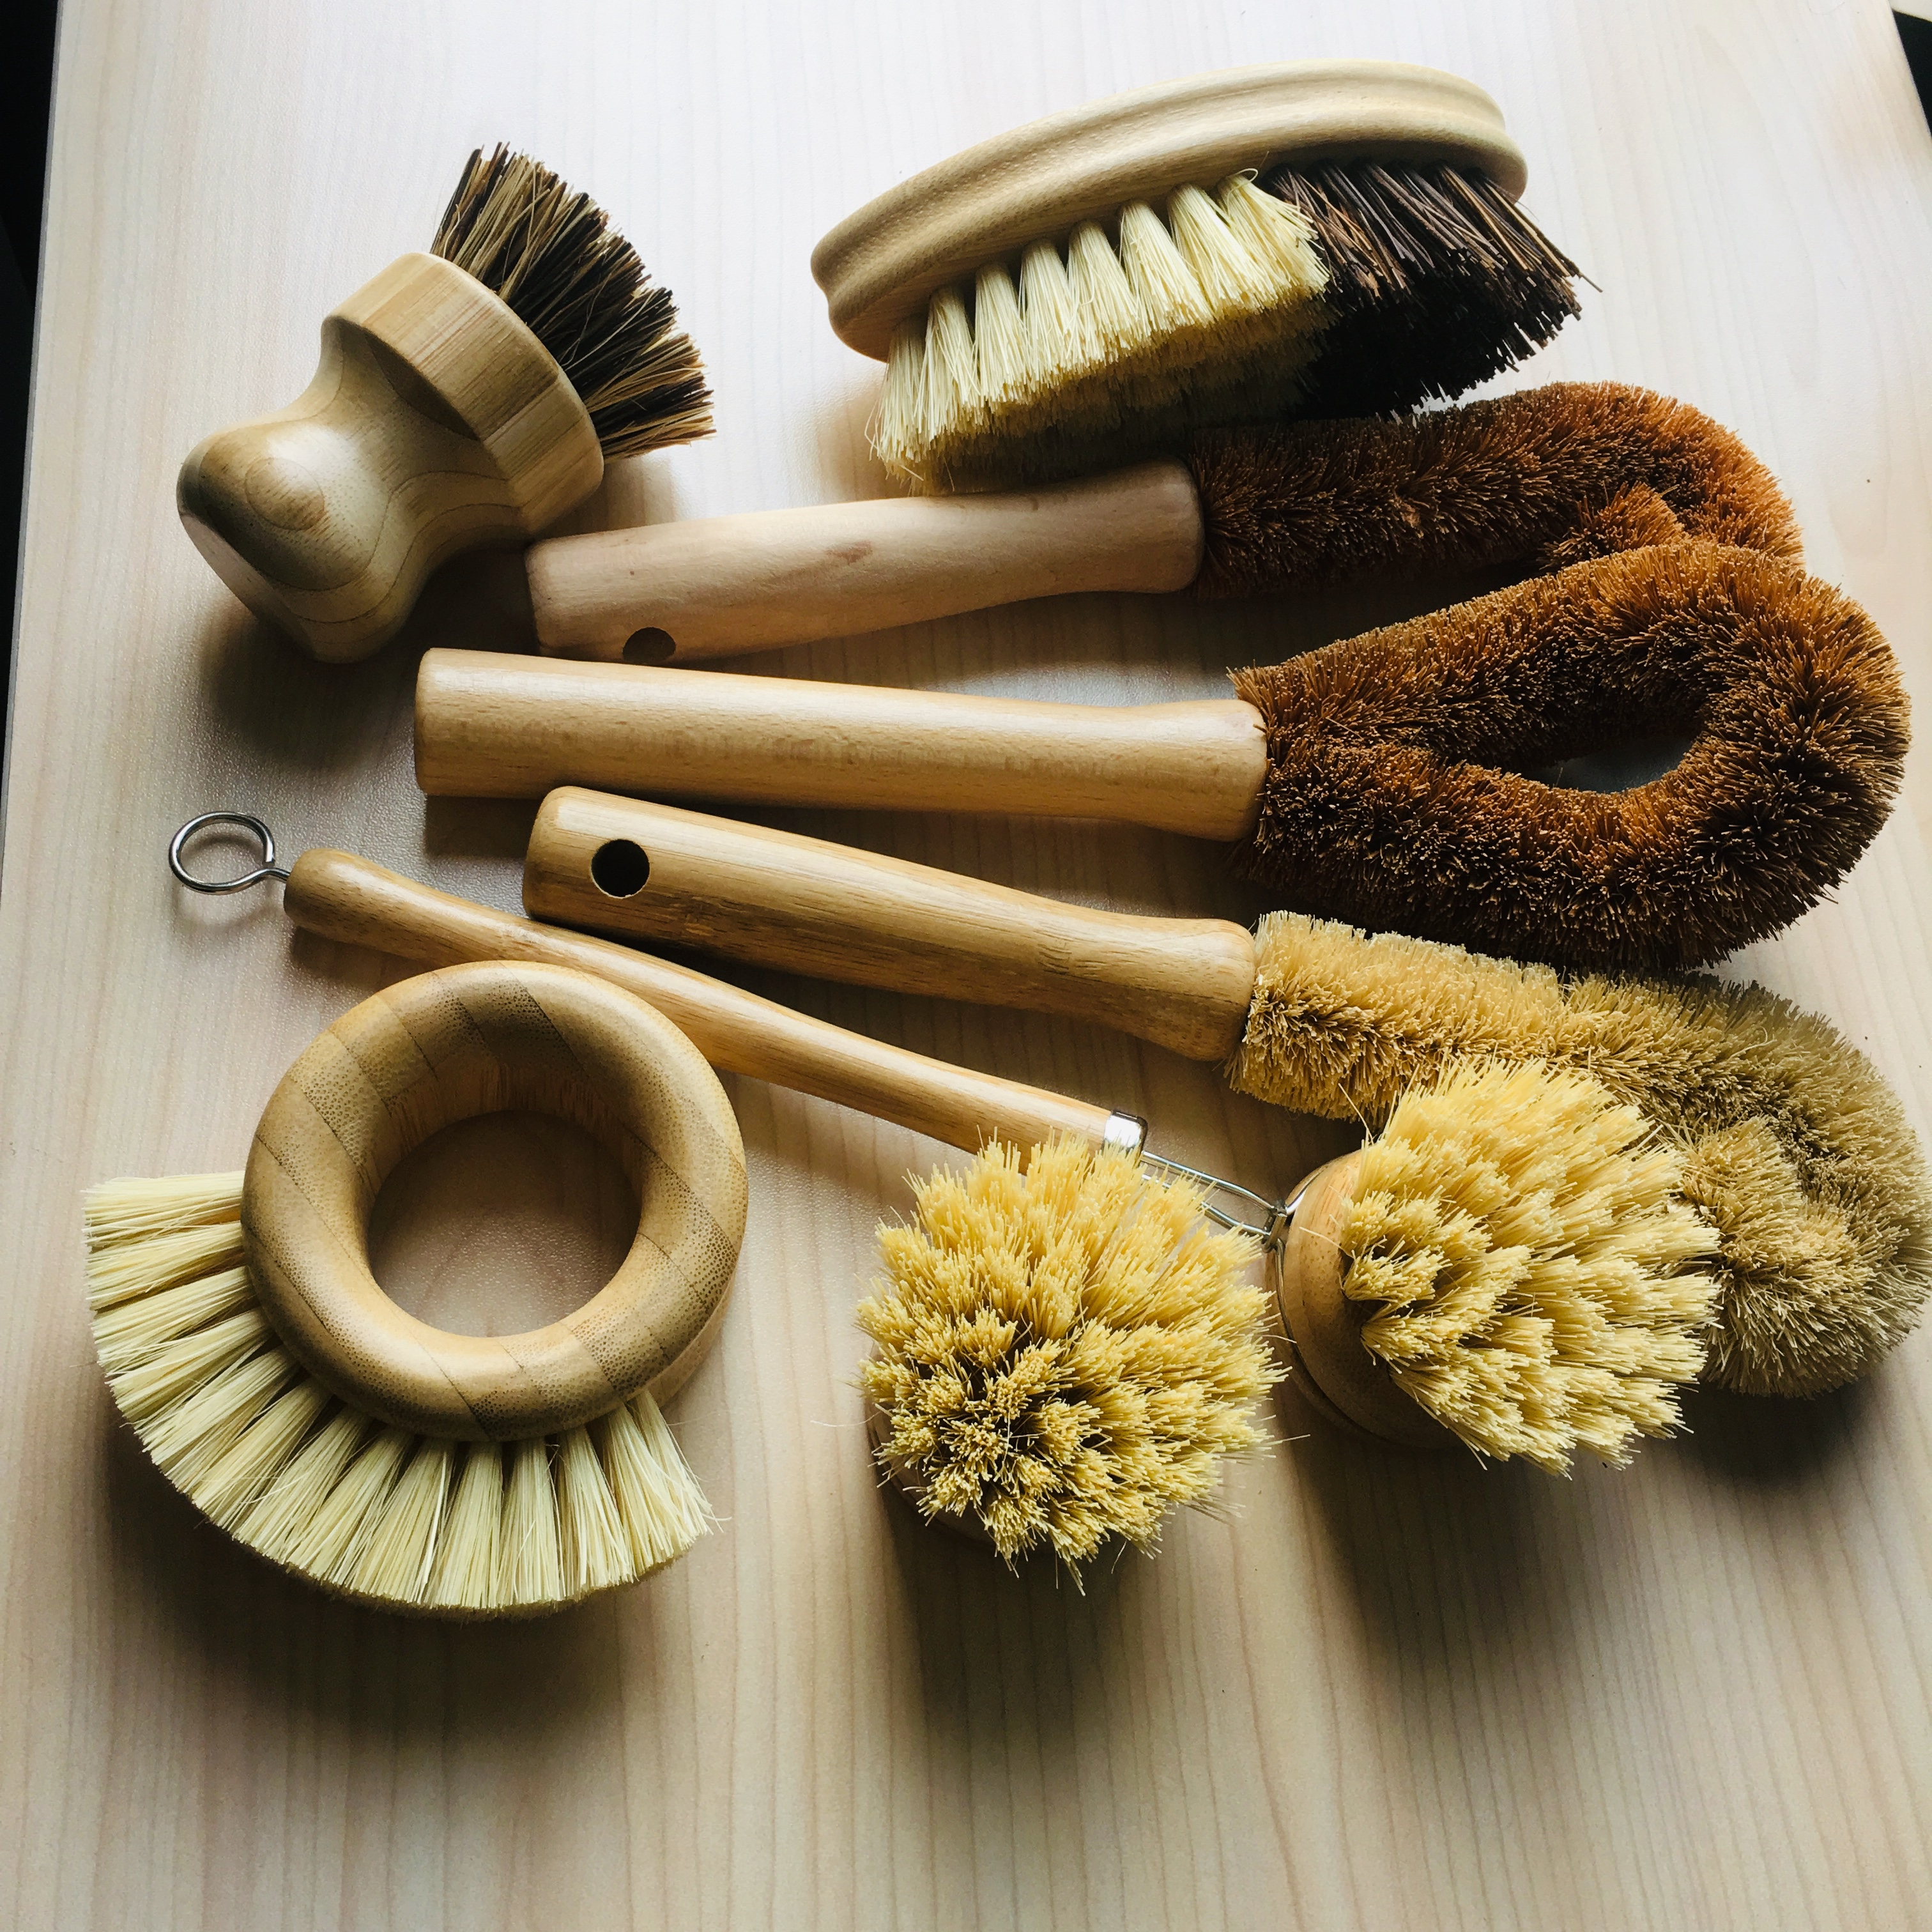 2019 hot sell household nature cleaner round bamboo dish brush vegetables clean tool kitchen pot bowl wash brushes